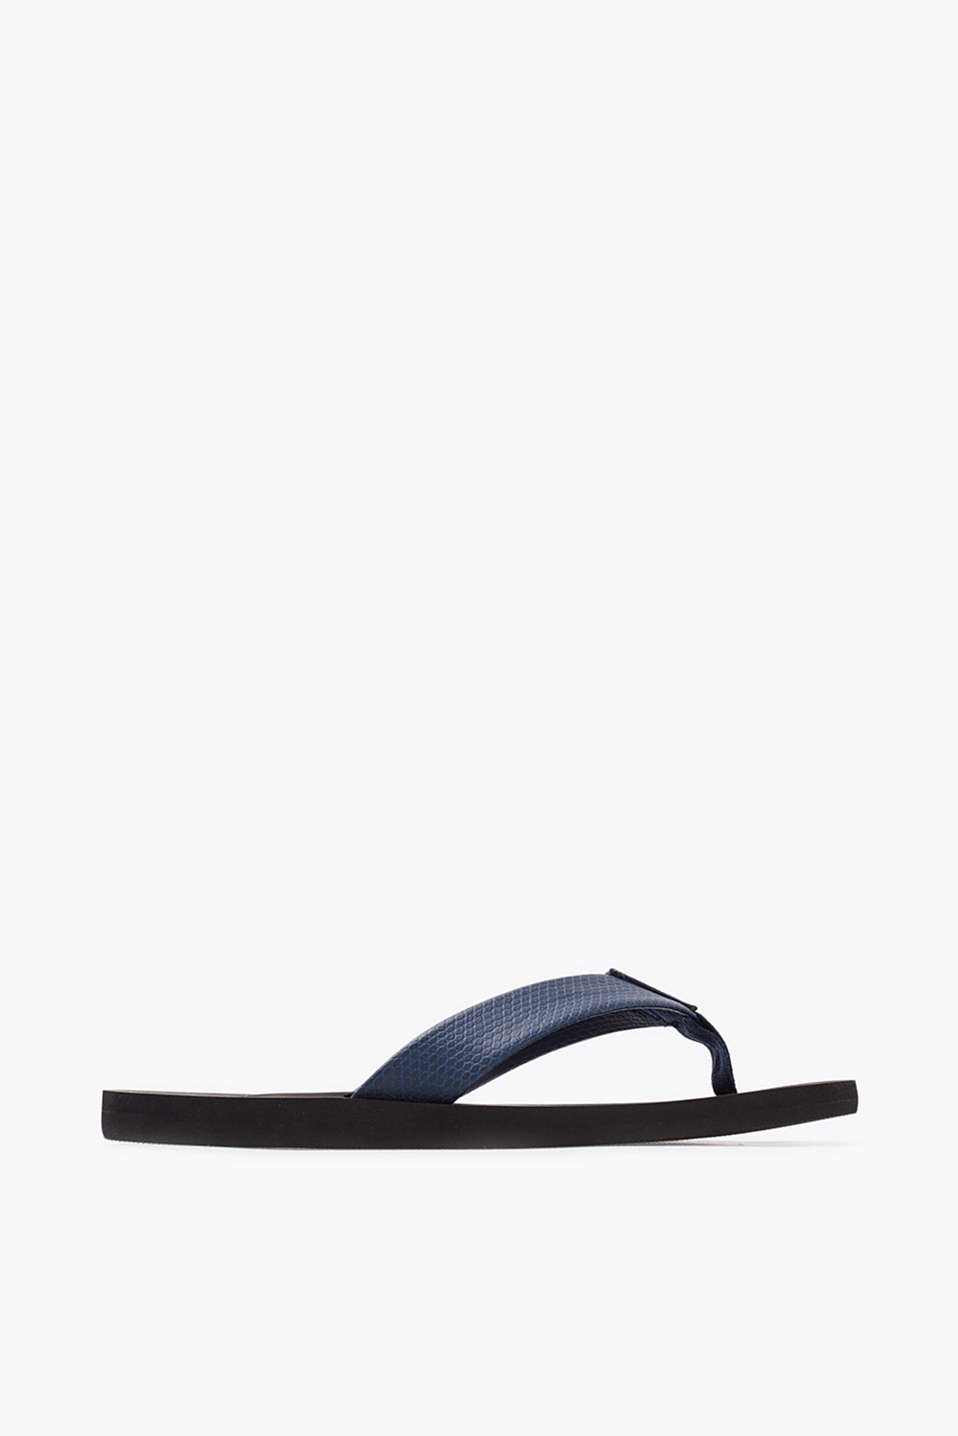 City thong sandals with reptile-look straps